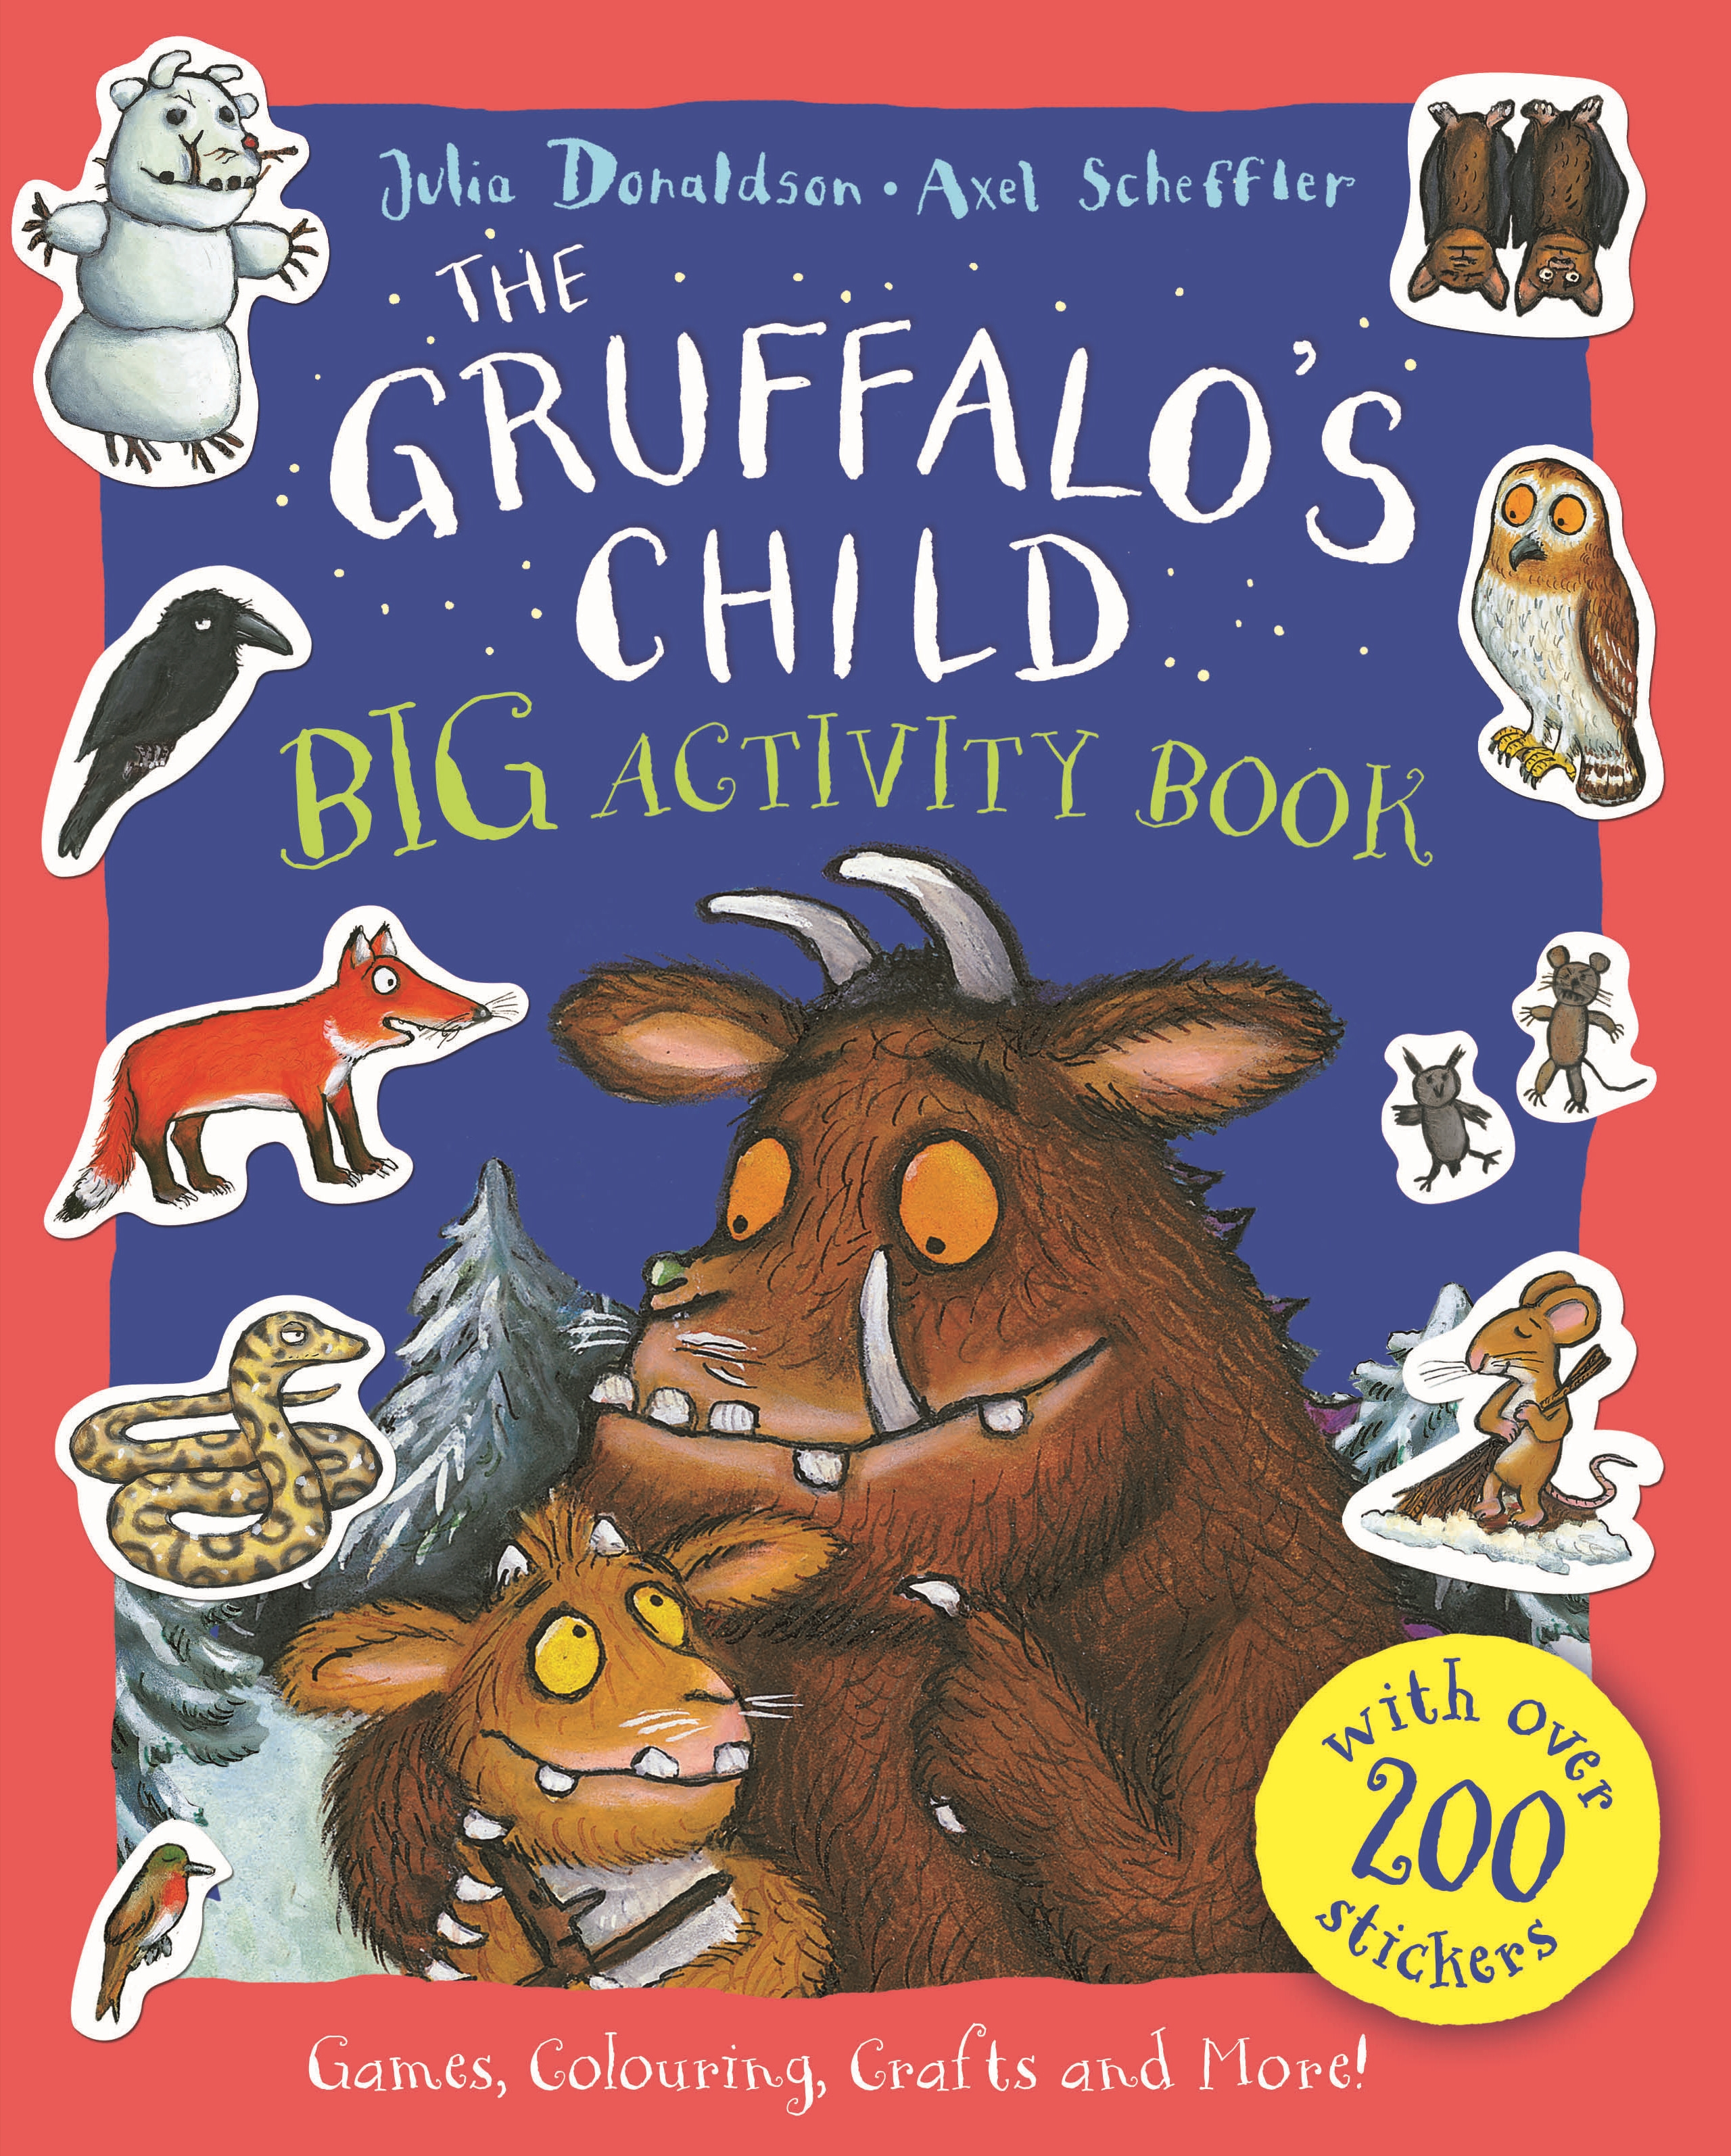 Product details pan macmillan australia the gruffalos child big activity book download image amipublicfo Image collections